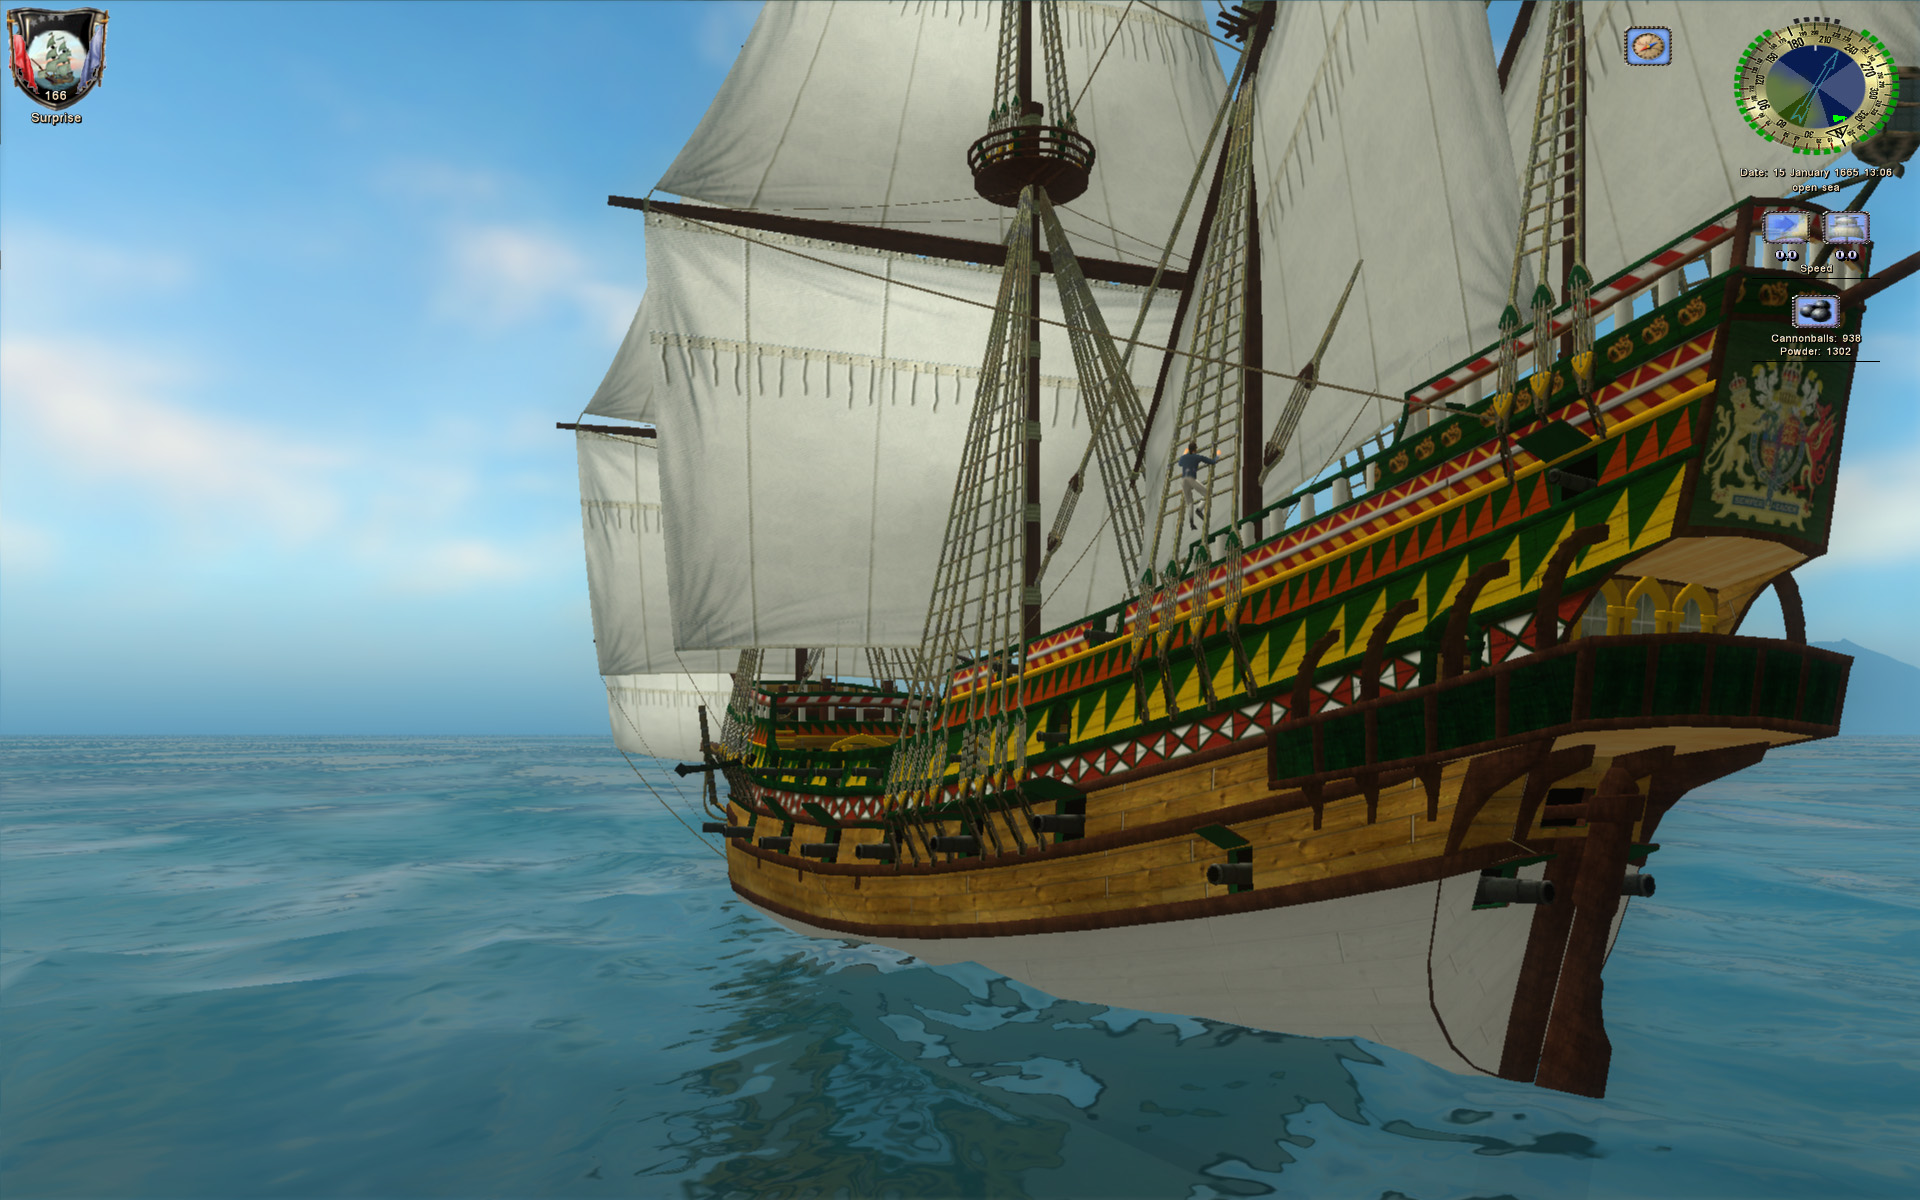 Revenge hull 3 image  Age of Pirates 2 Gentlemen of Fortune mod